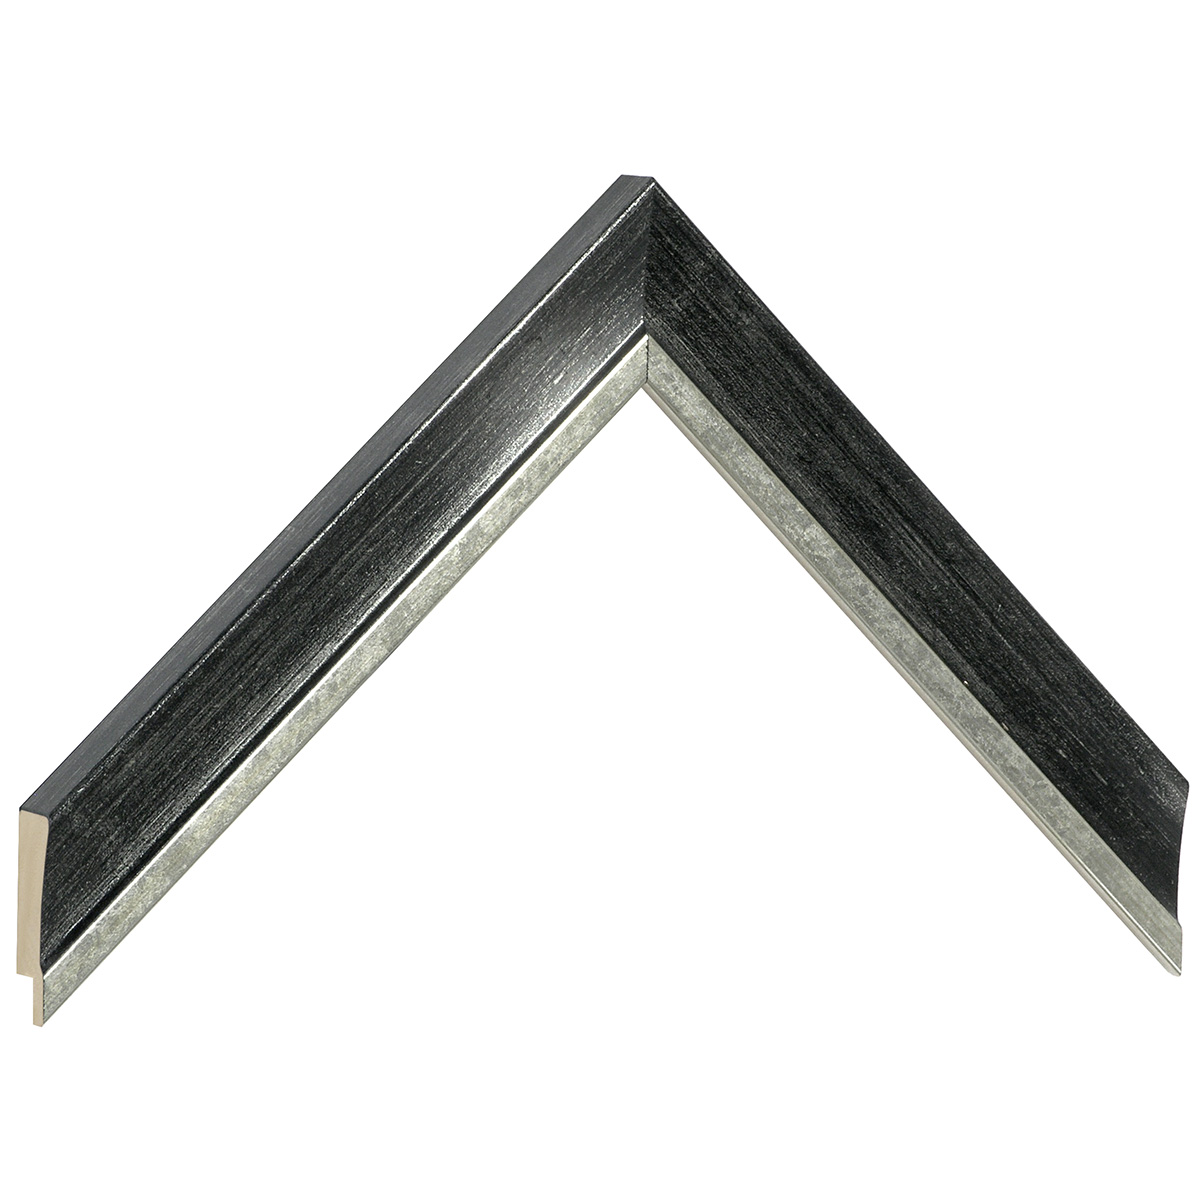 Moulding ayous - Width 25mm - Gold with black band